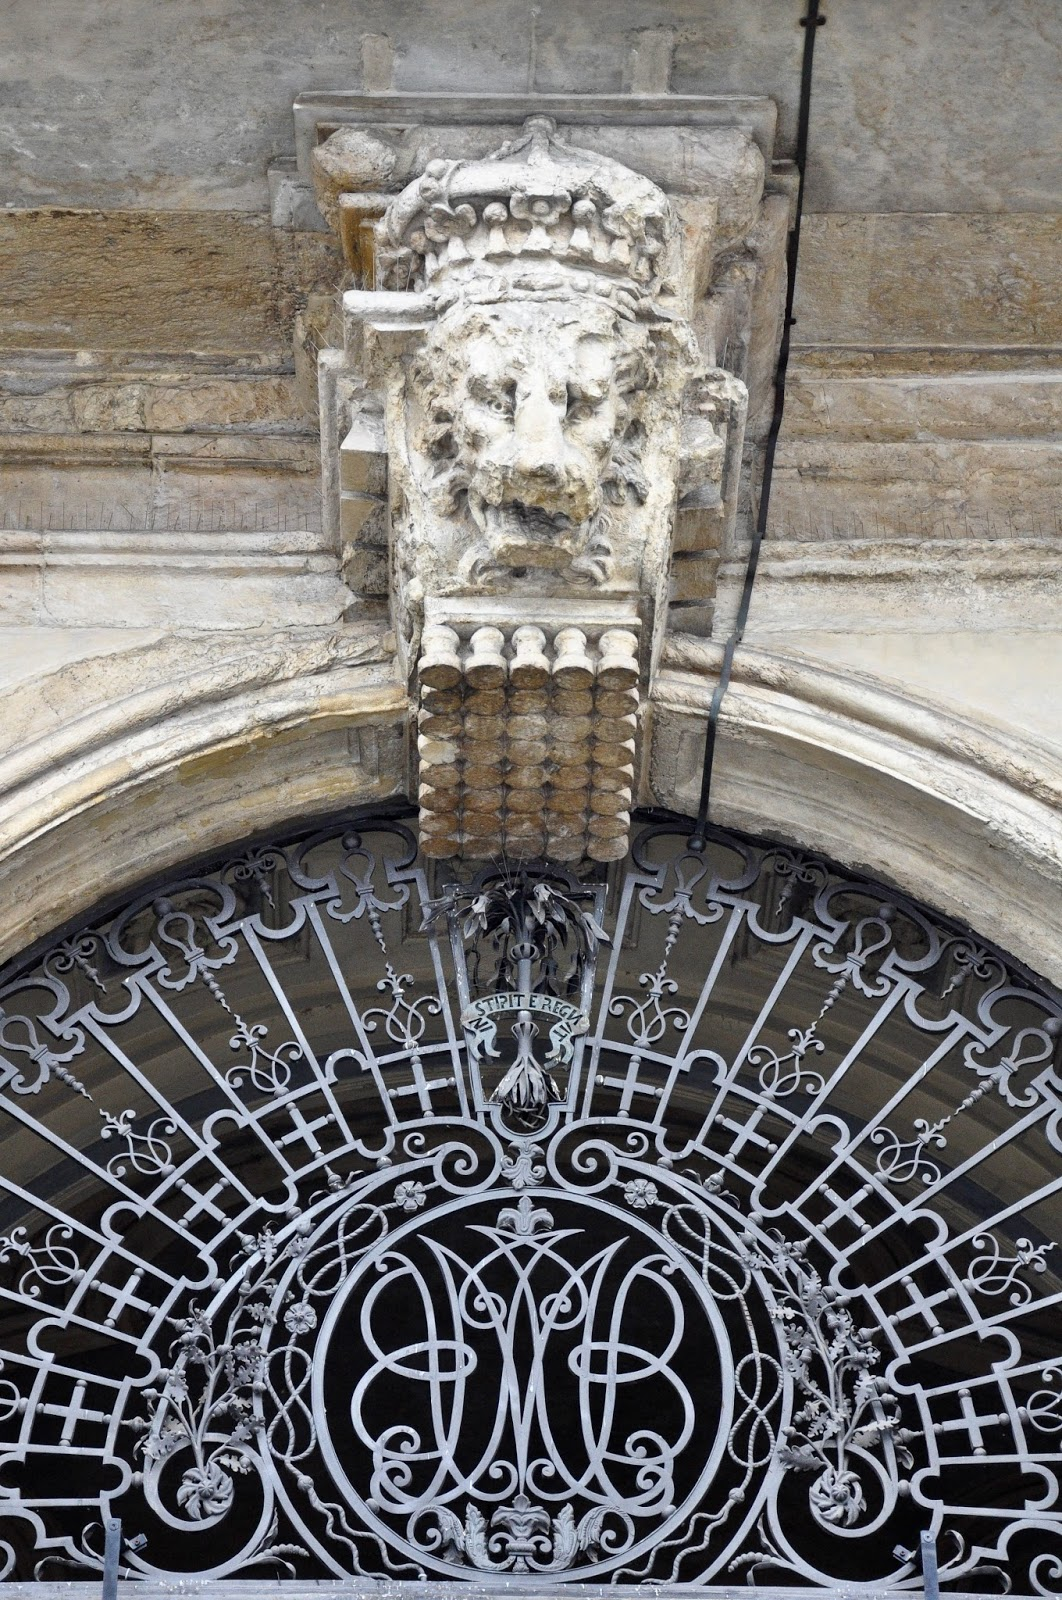 One of the three lion heads above the entrance, Palazzo Madama, Turin, Italy